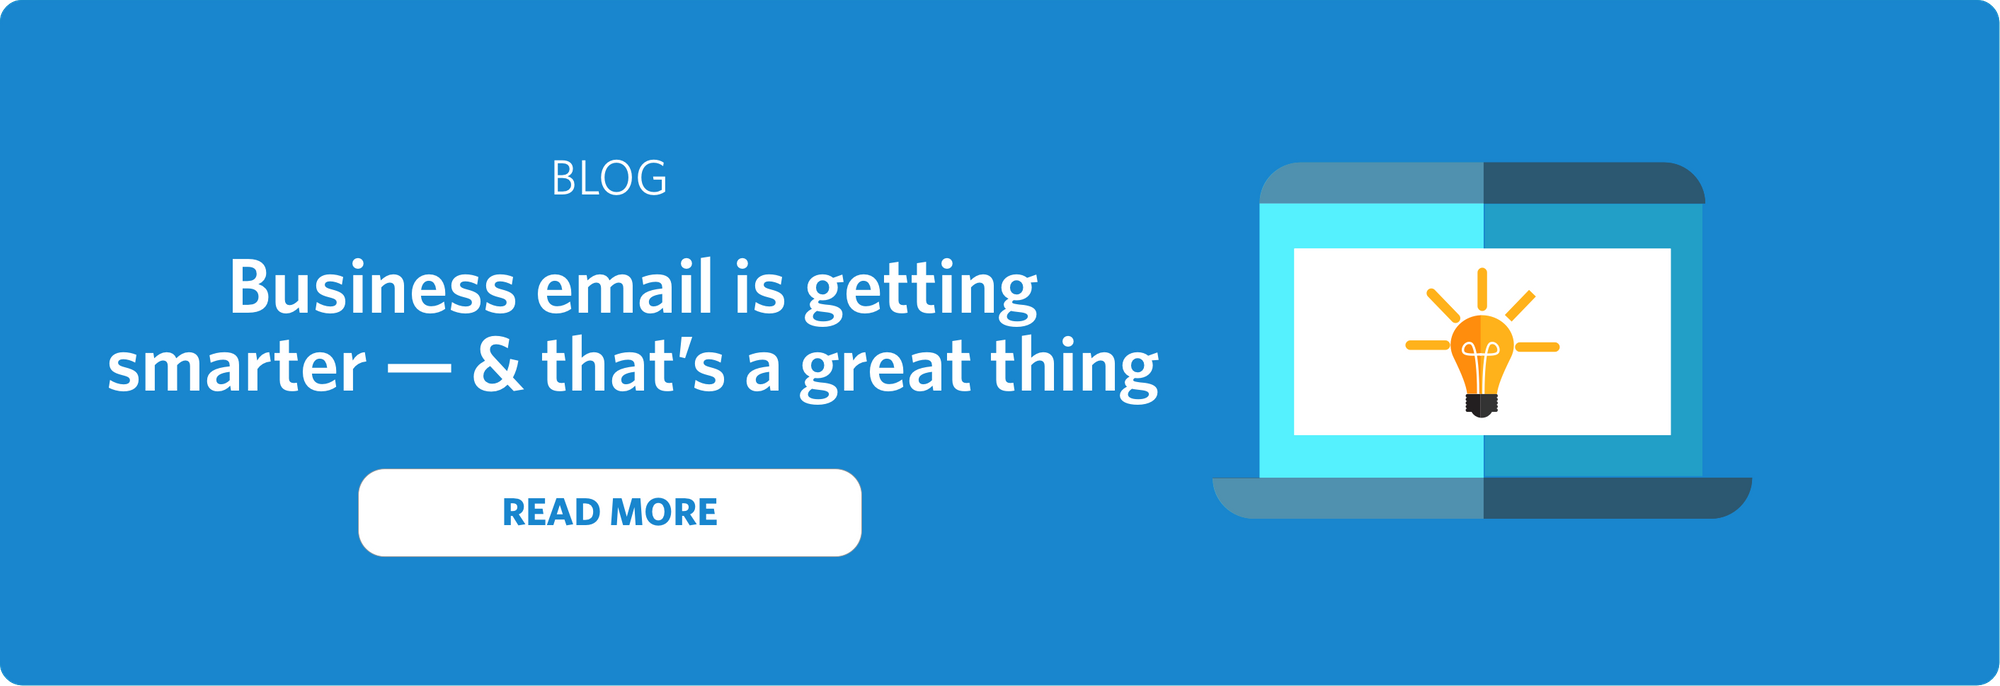 business-email-is-getting-smarter-cta